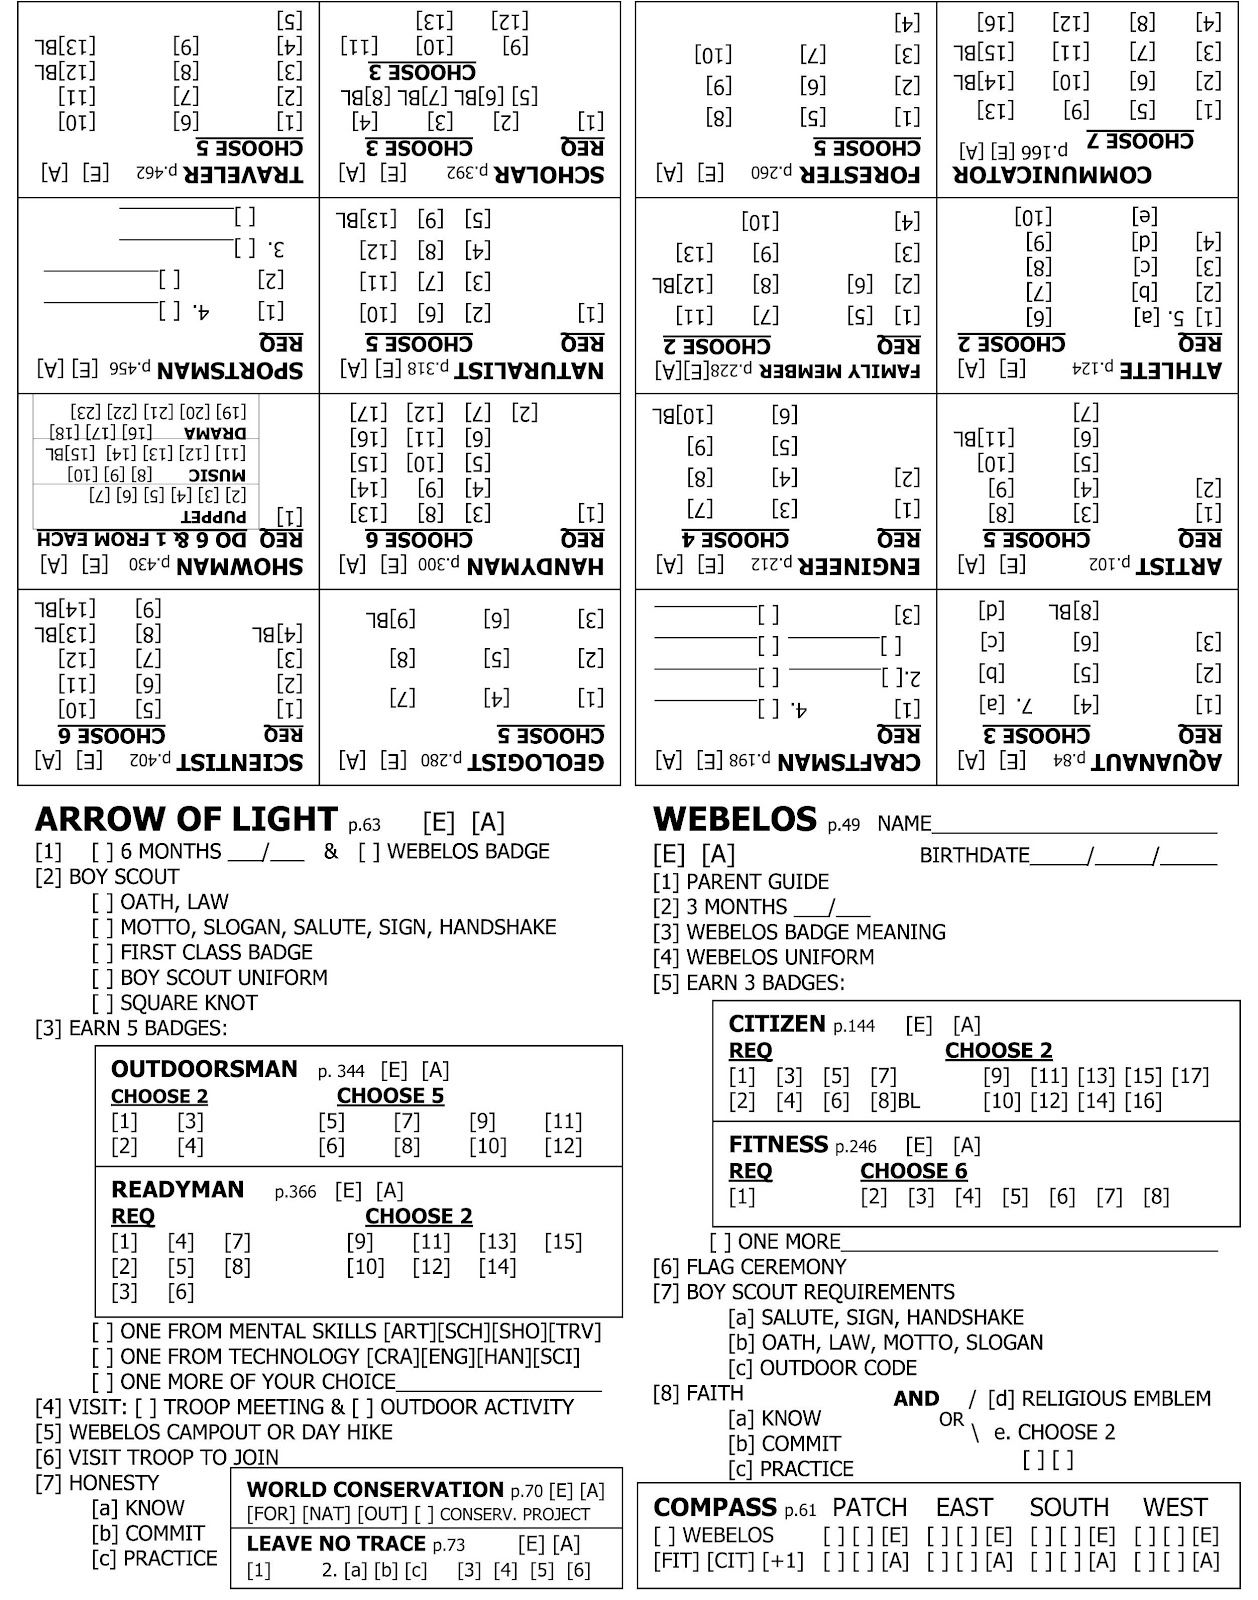 Webelos individual record form Primary Cub Scouts – Webelos Athlete Worksheet